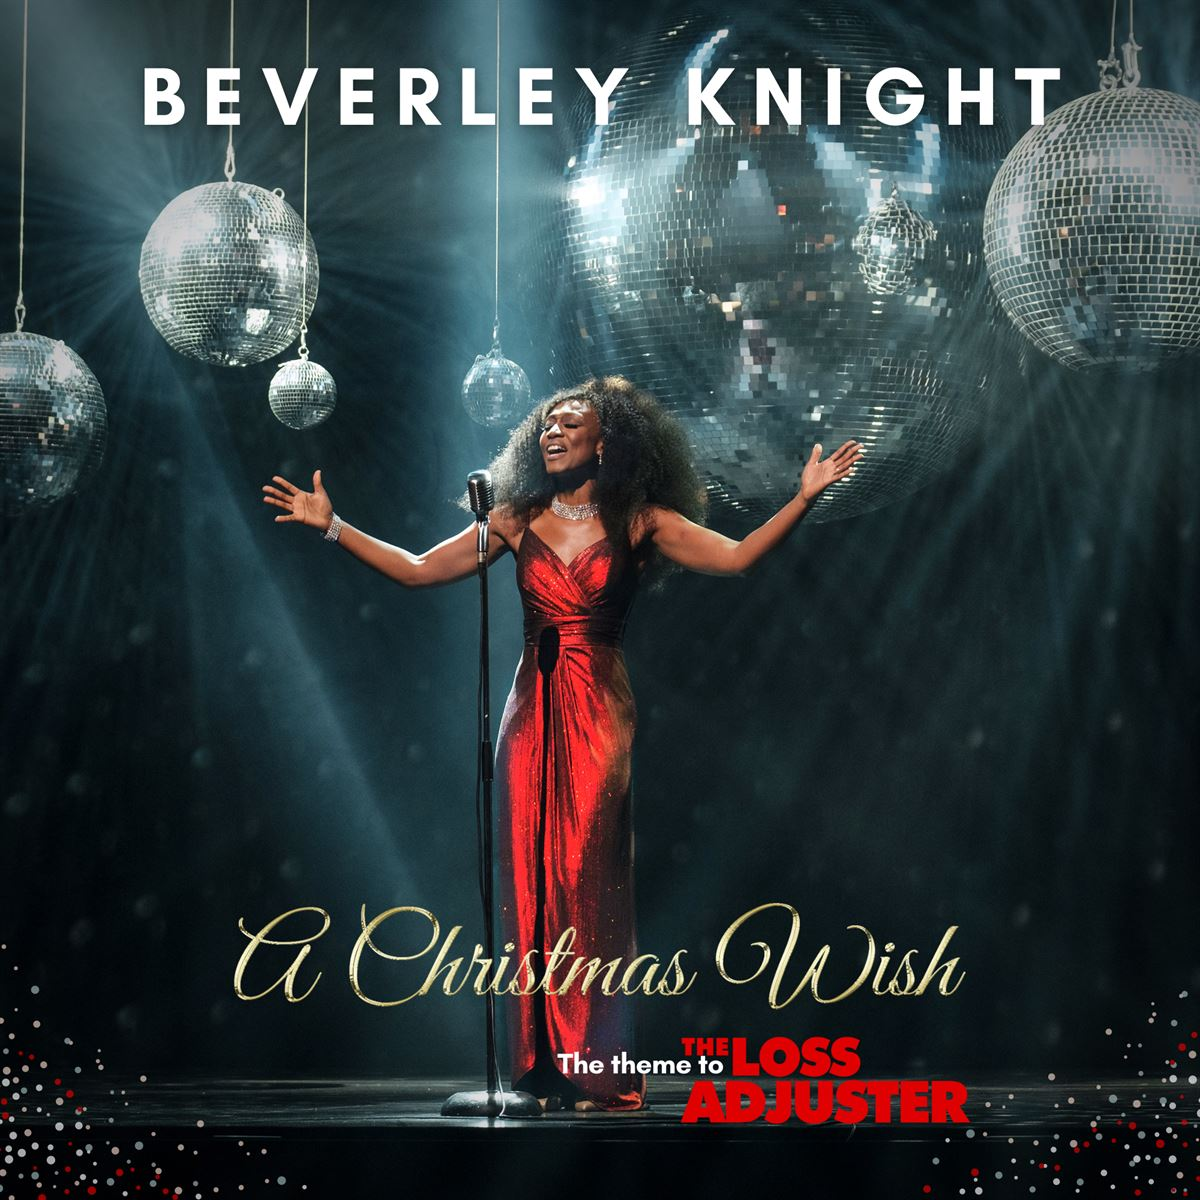 Beverley Knight - A Christmas wish